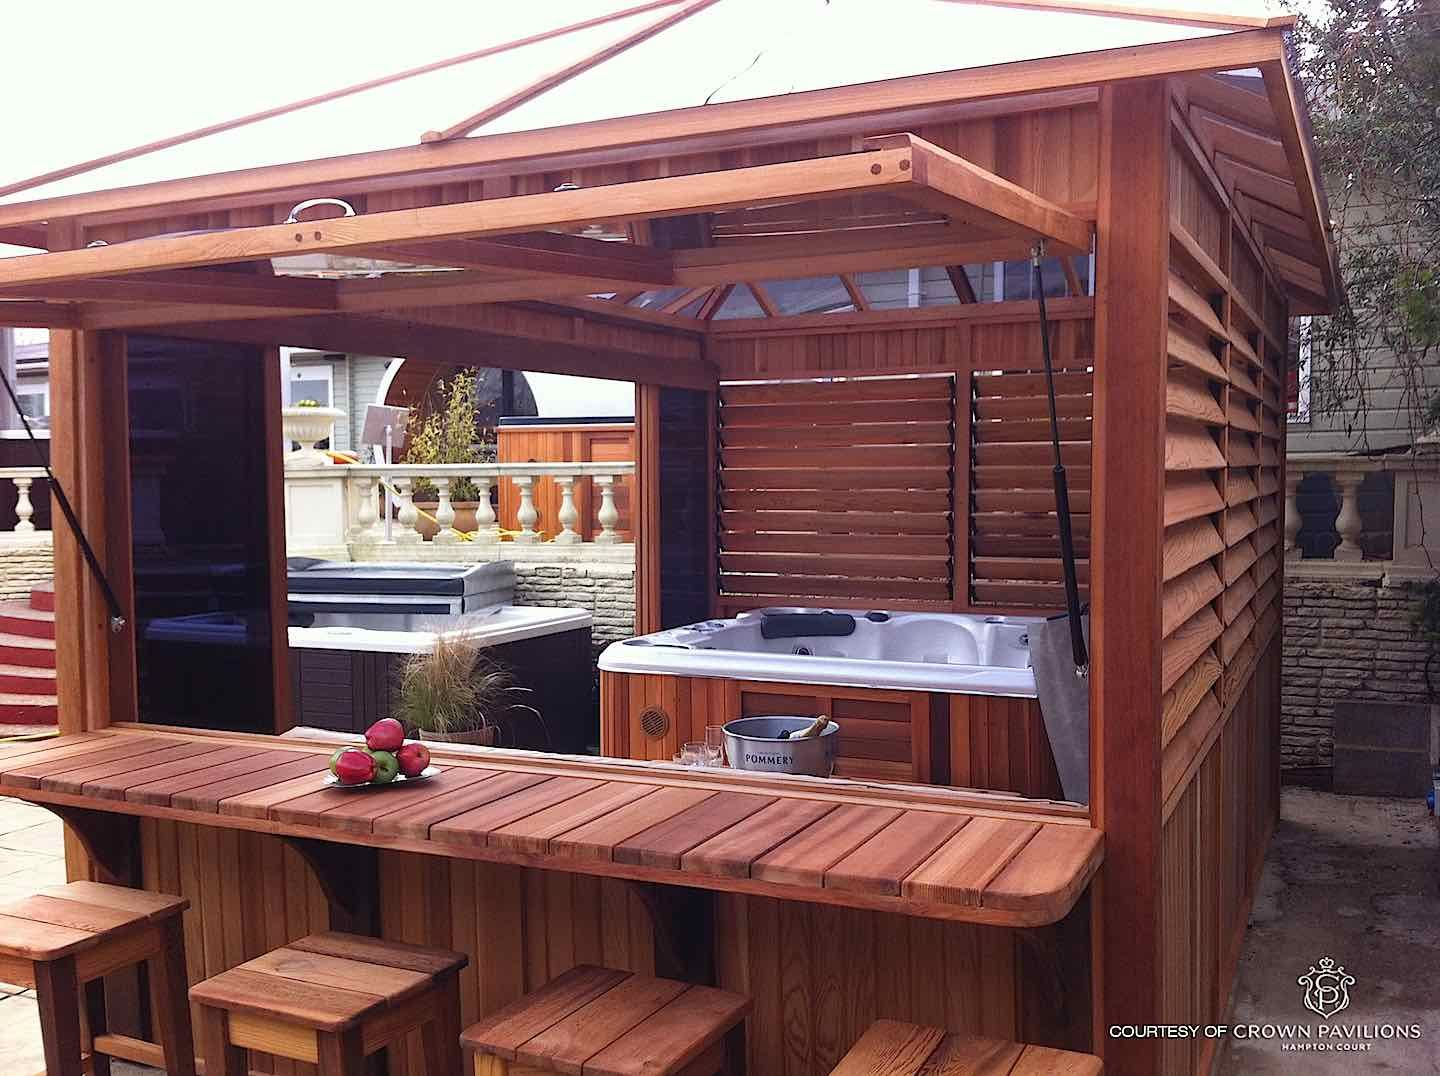 shelter ebay seating gazebo bar hot private garden and wooden wood area pin tub enclosed